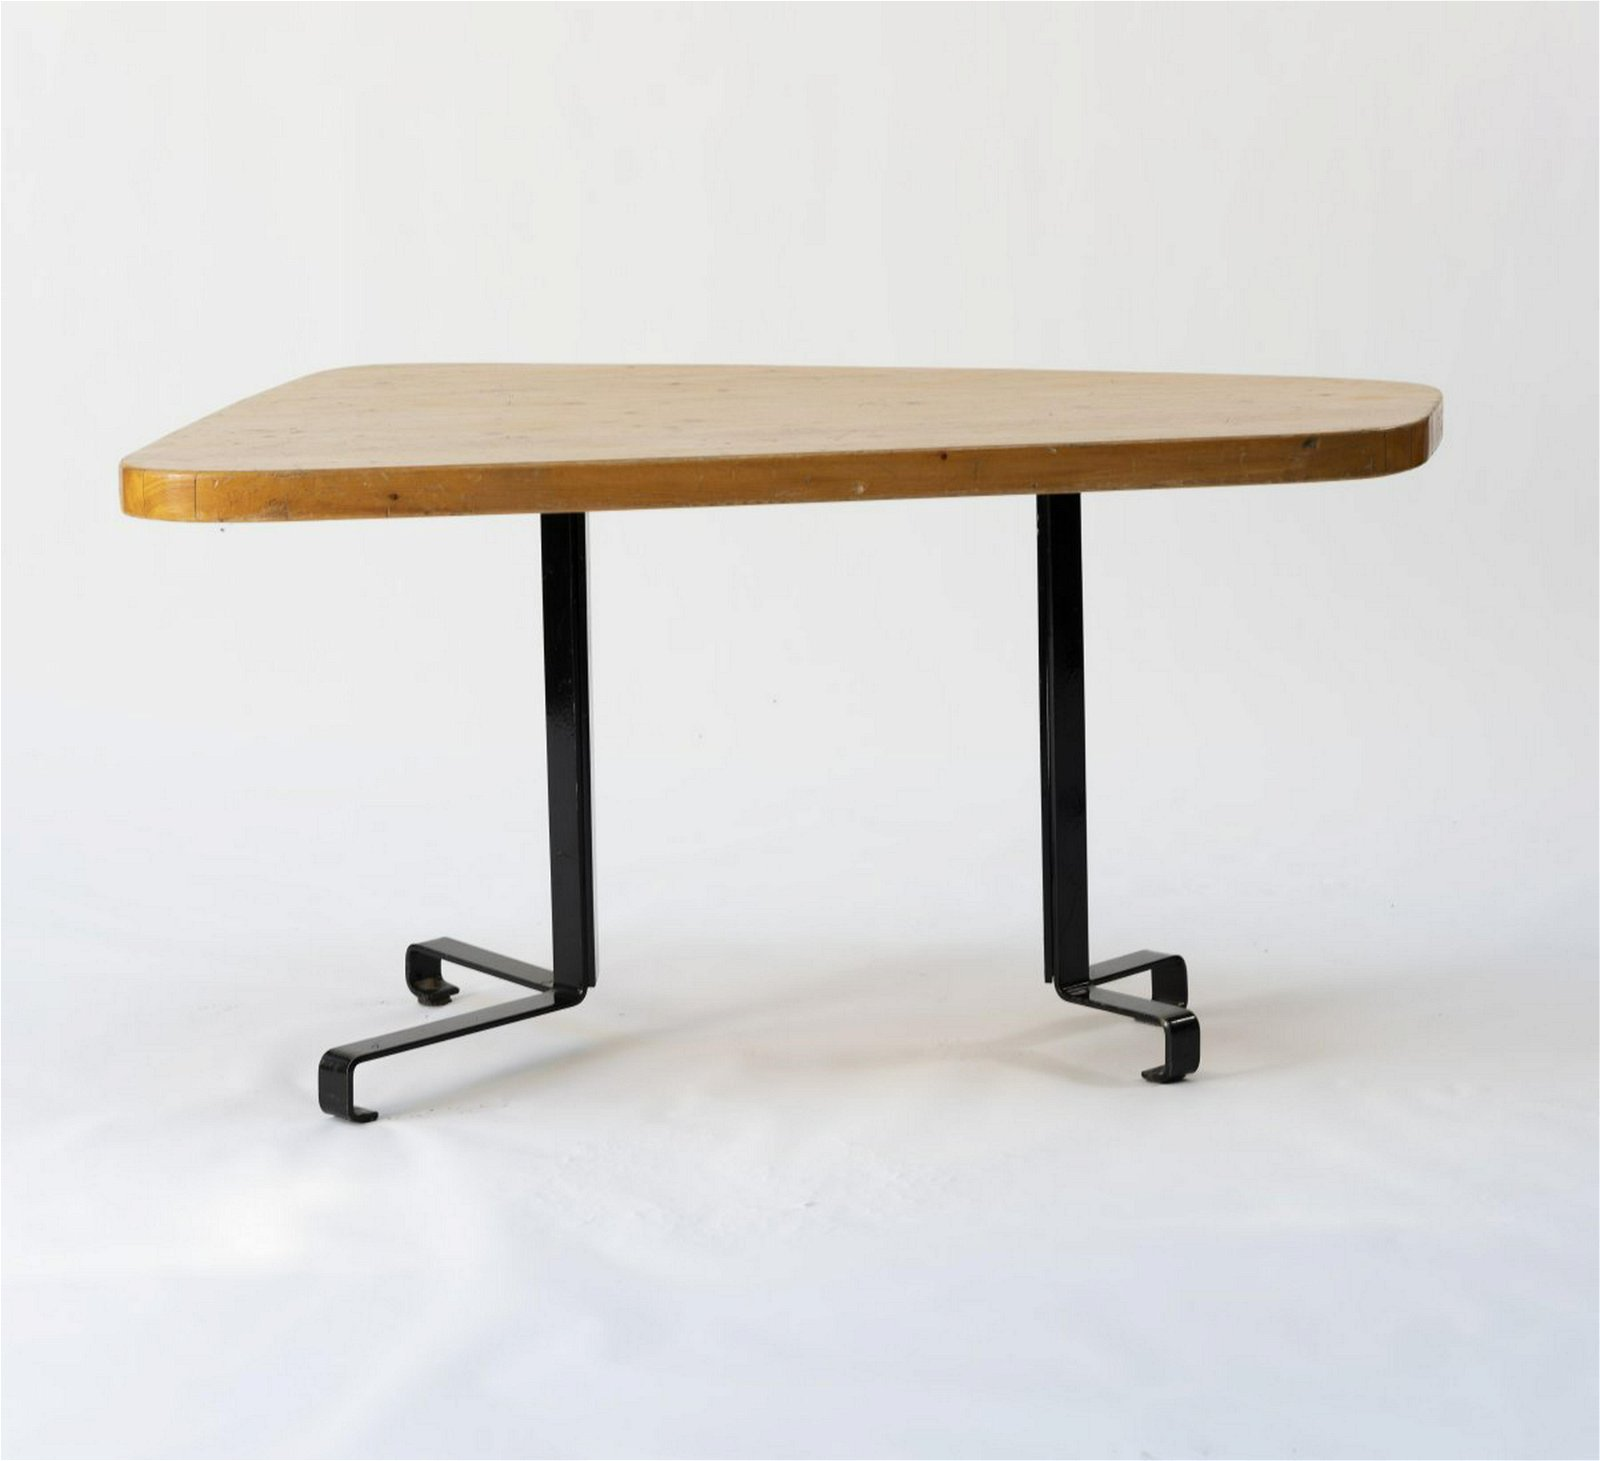 Charlotte Perriand, 'Les Arcs' dining table, 1968